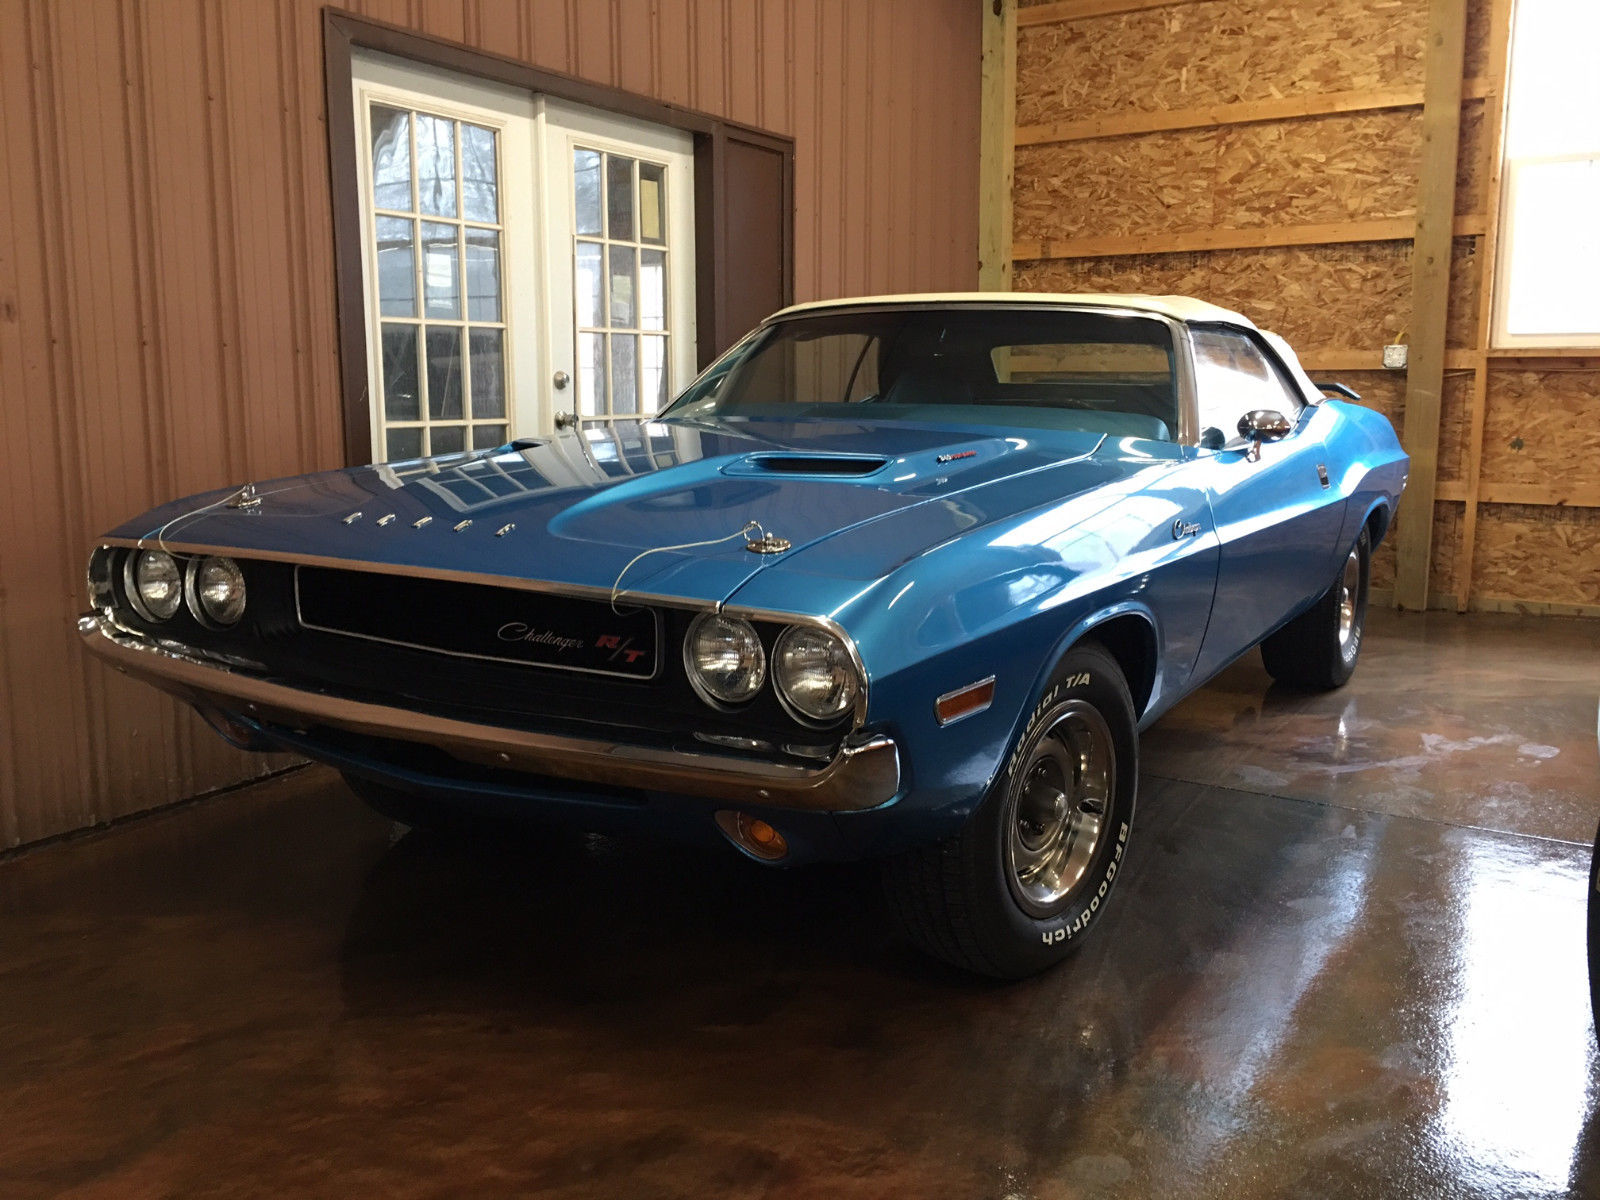 Awesome 1970 Dodge Challenger Convertible Rallye B5 Blue 340 Just Red 2017 2018